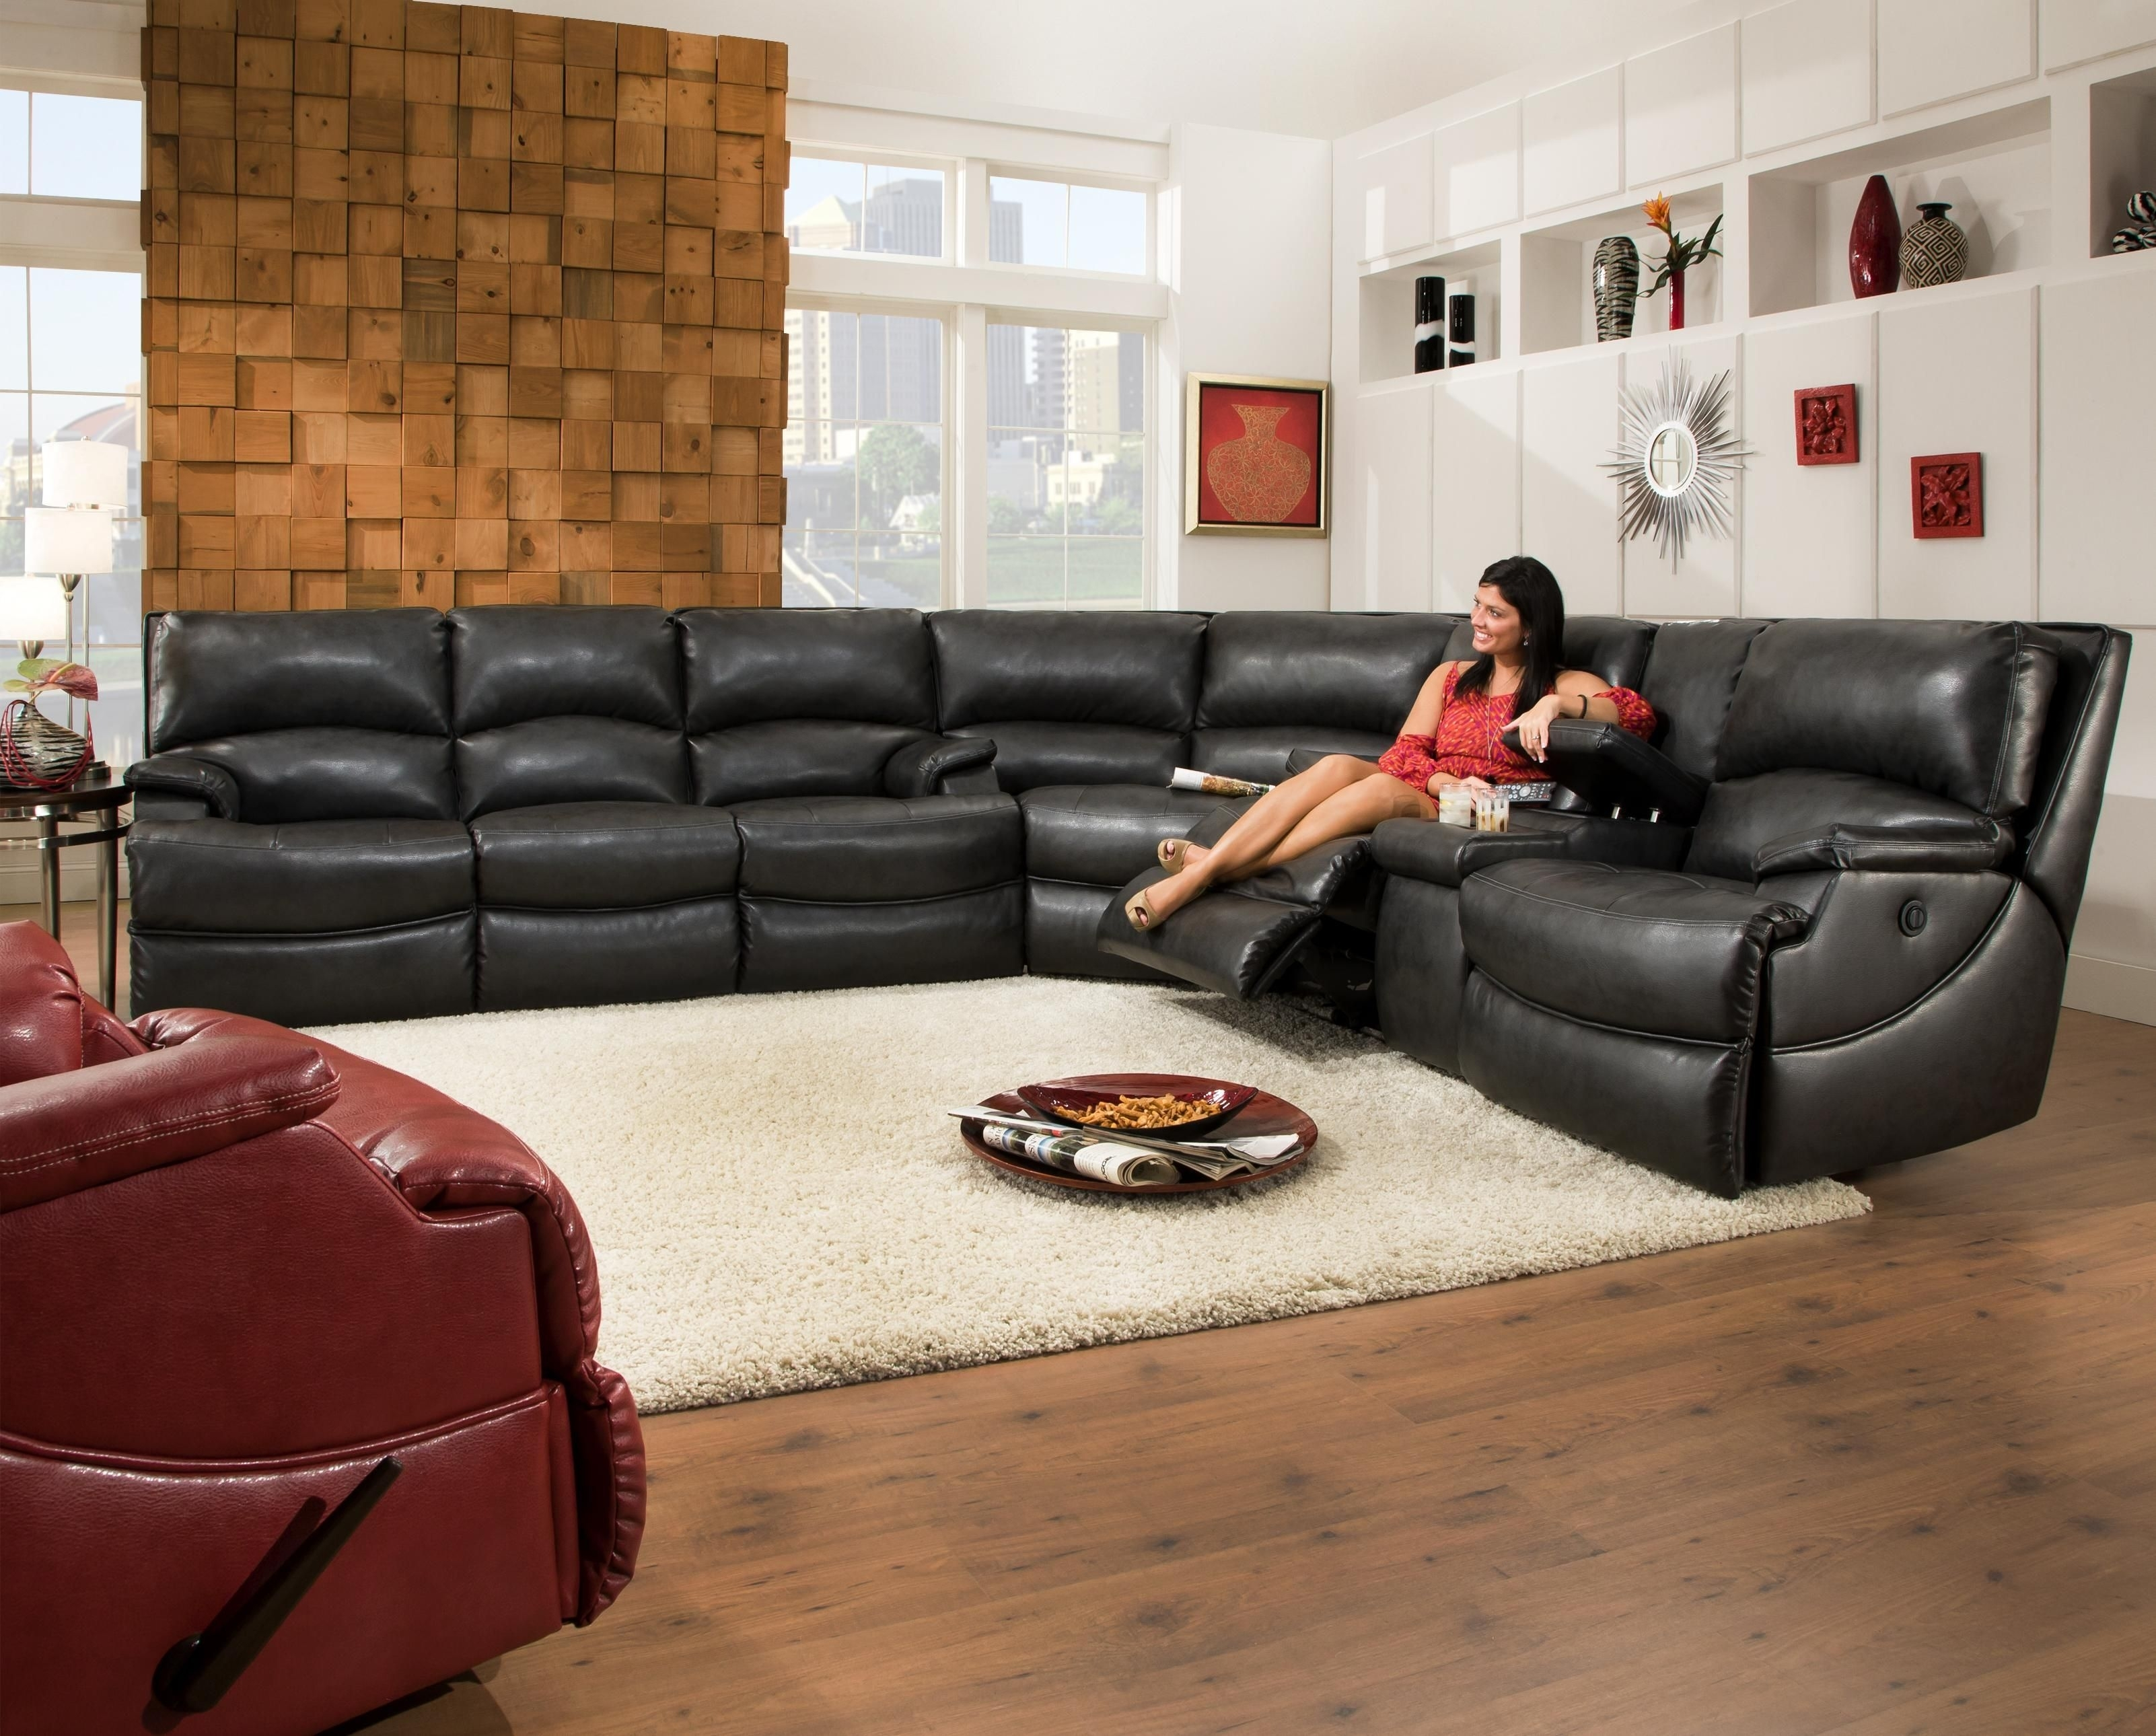 Southern Motion Shazam Six Seat Reclining Sectional Sofa With Cup For Sectional Sofas With Cup Holders (View 10 of 10)